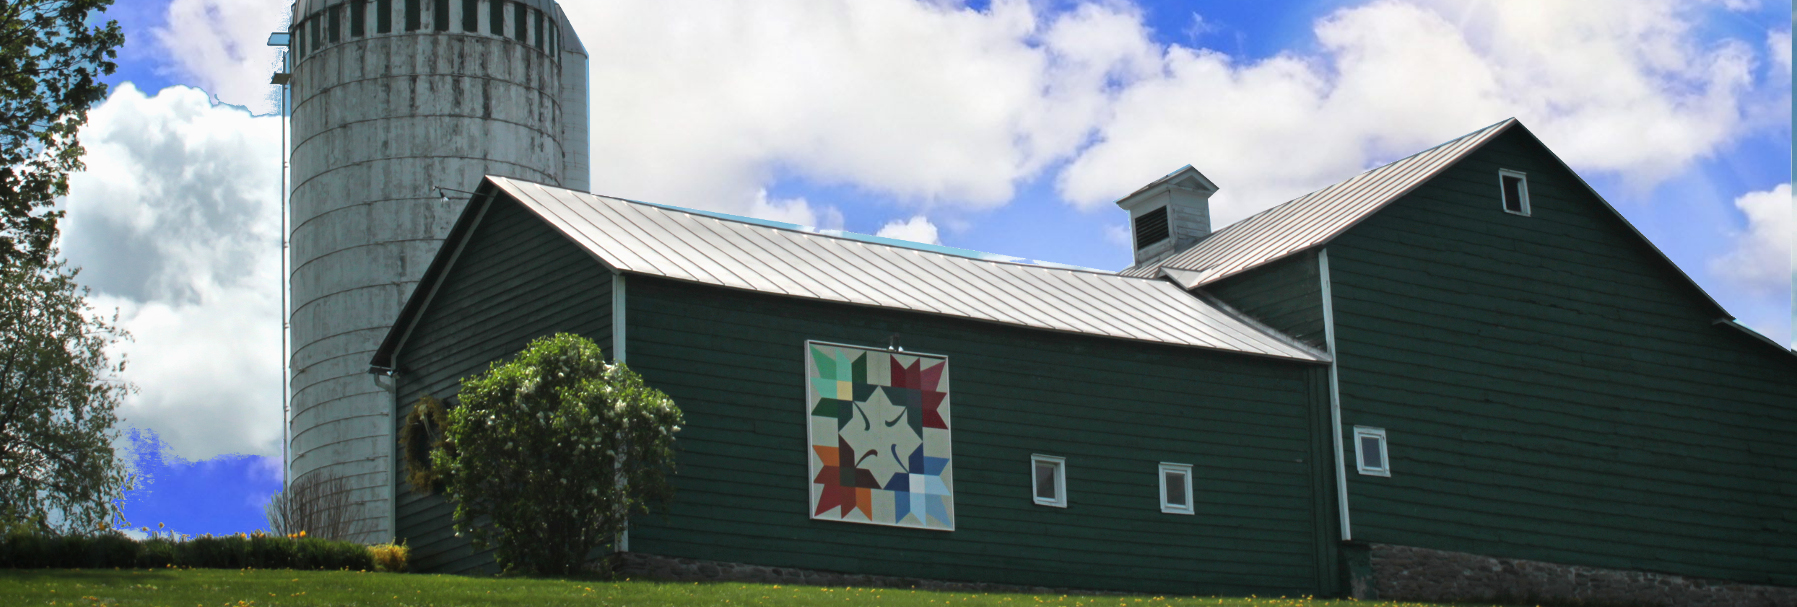 quilt barn photo - schoharie quilt barn trail